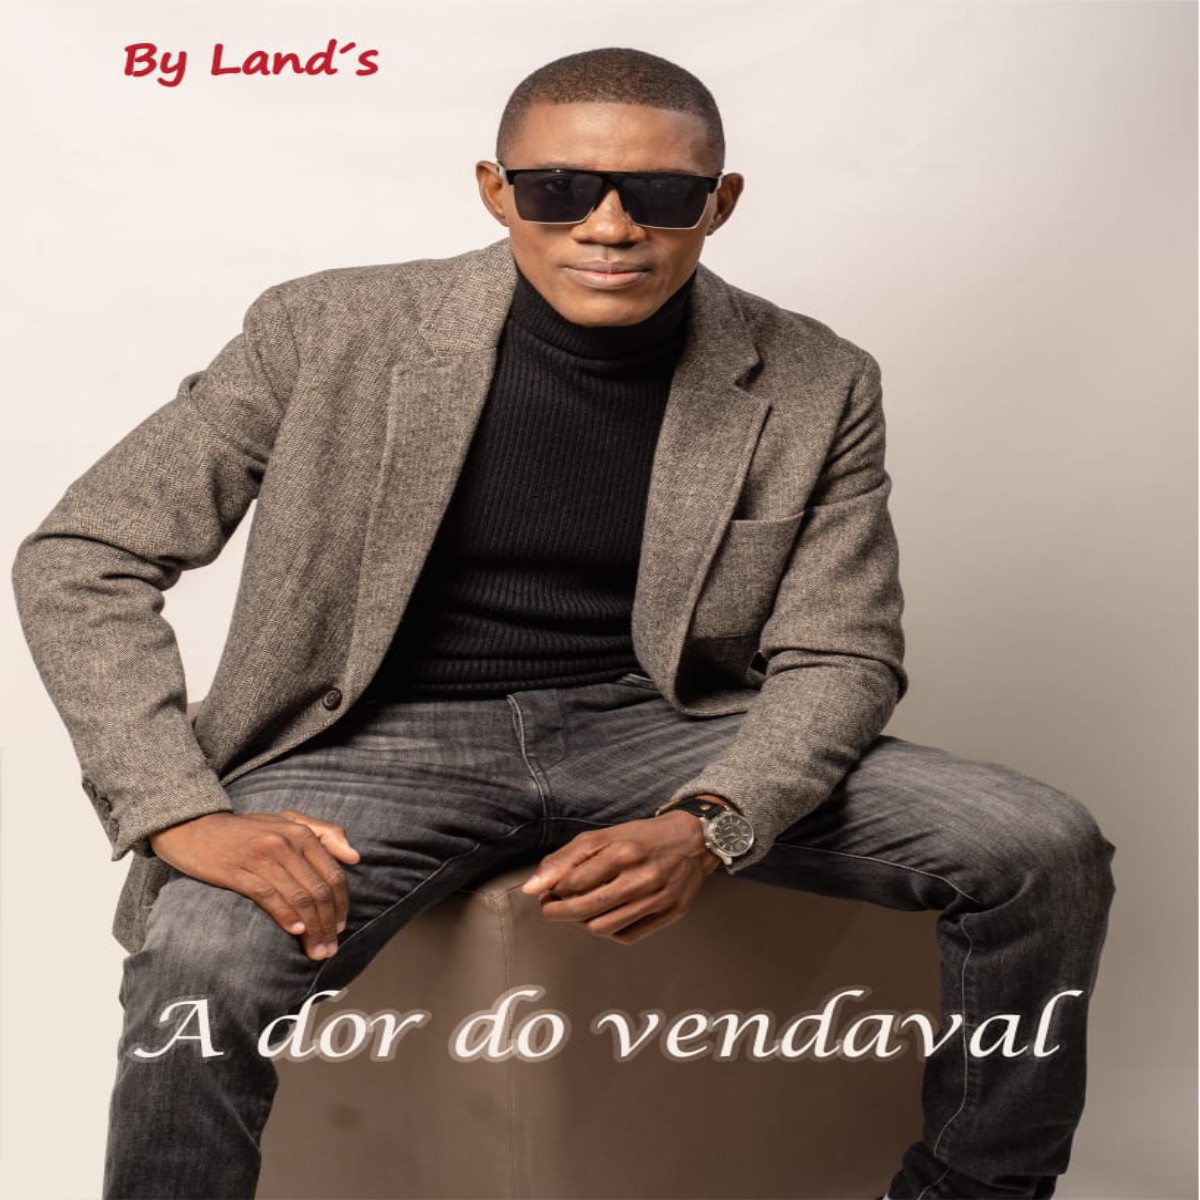 By Land's - A Dor do Vendaval